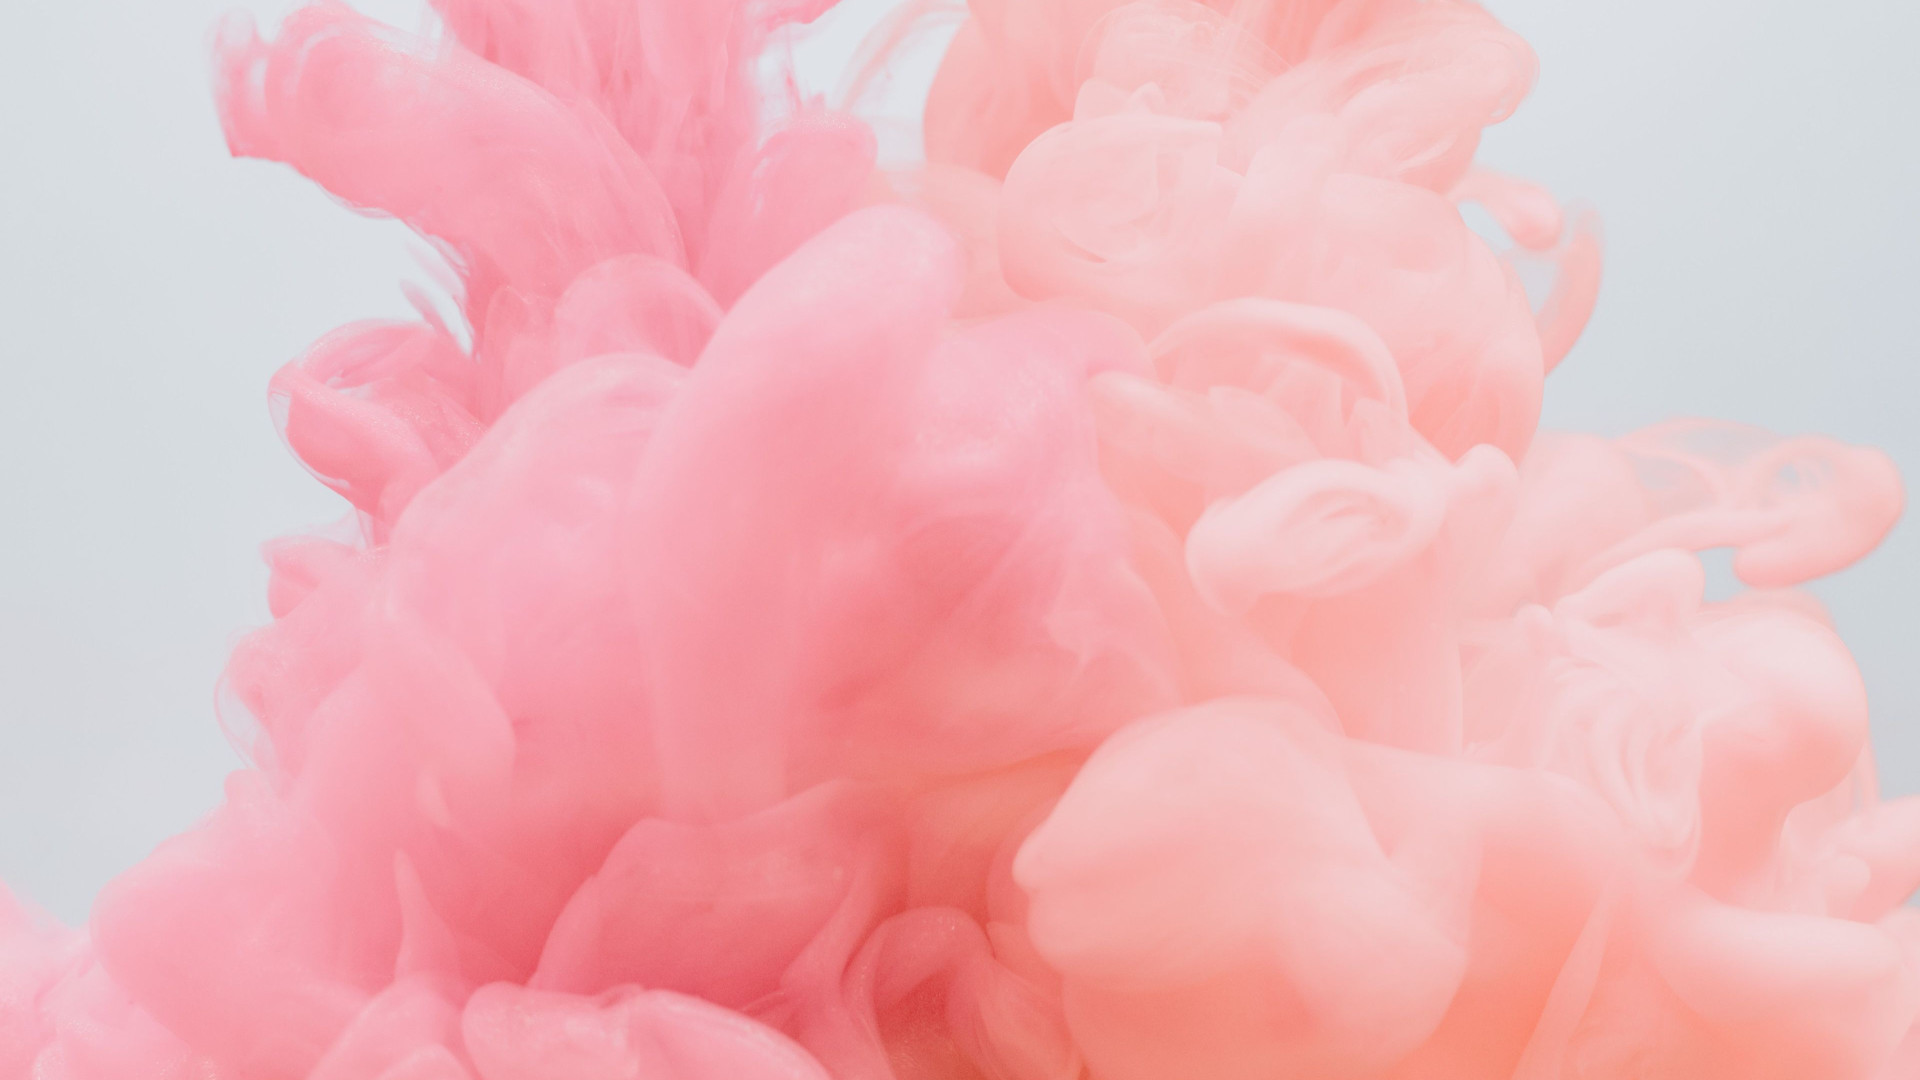 Pink Puffs - Zoom Virtual Background